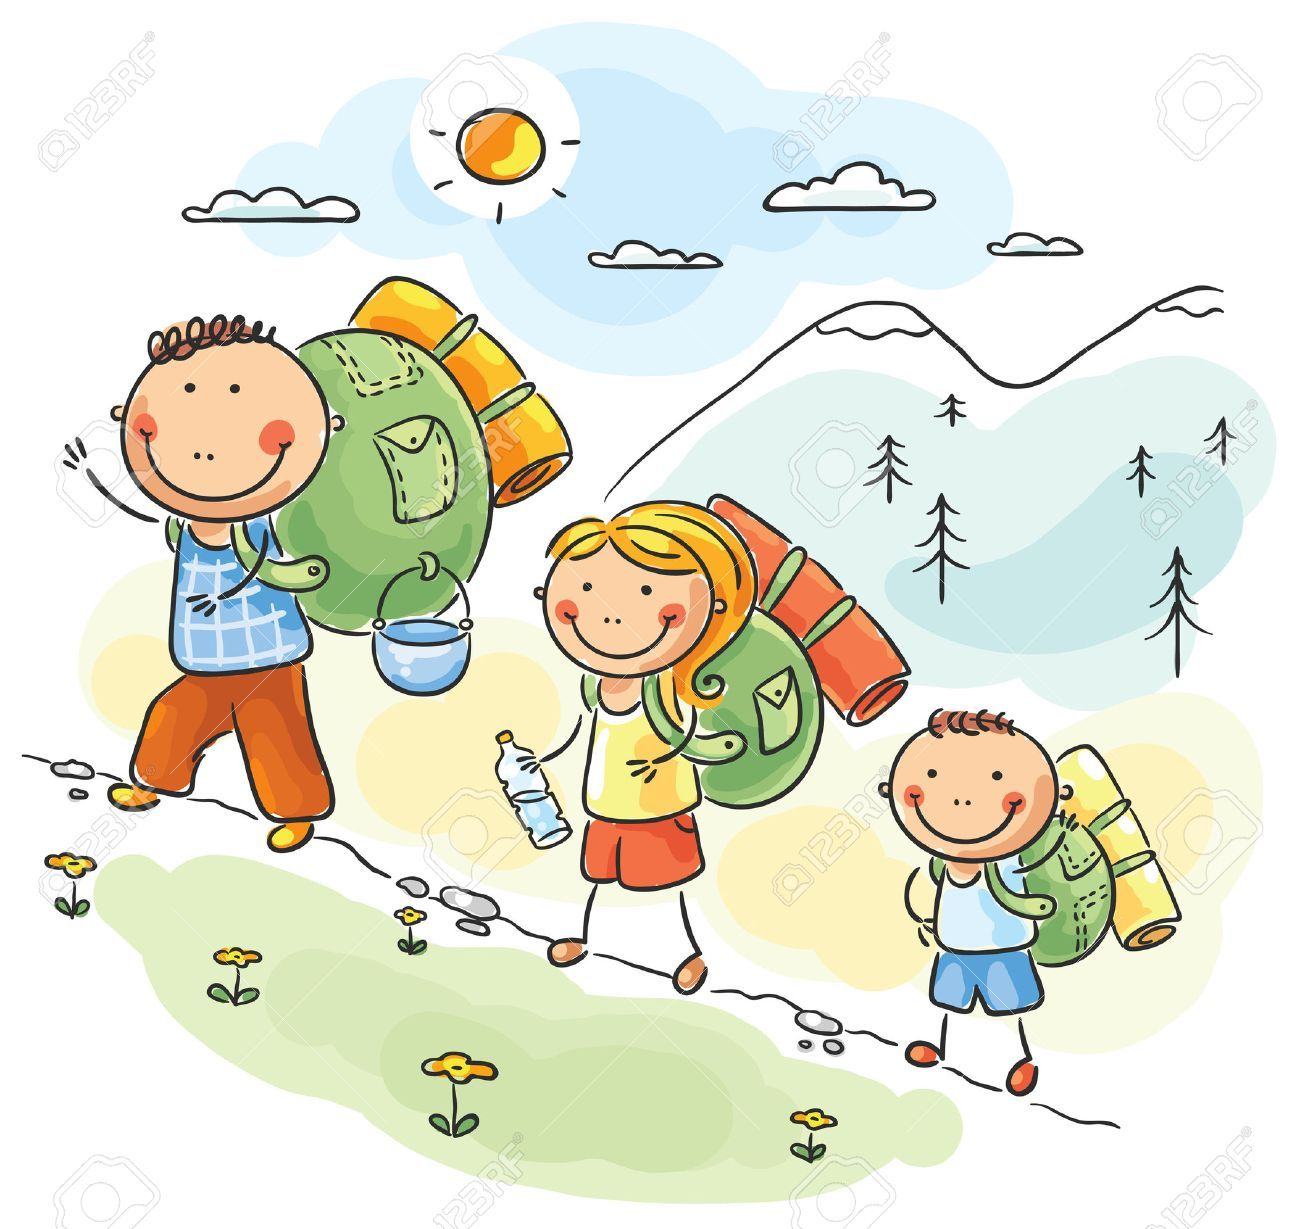 Hiking images clipart picture royalty free Family hiking clipart 2 » Clipart Portal picture royalty free